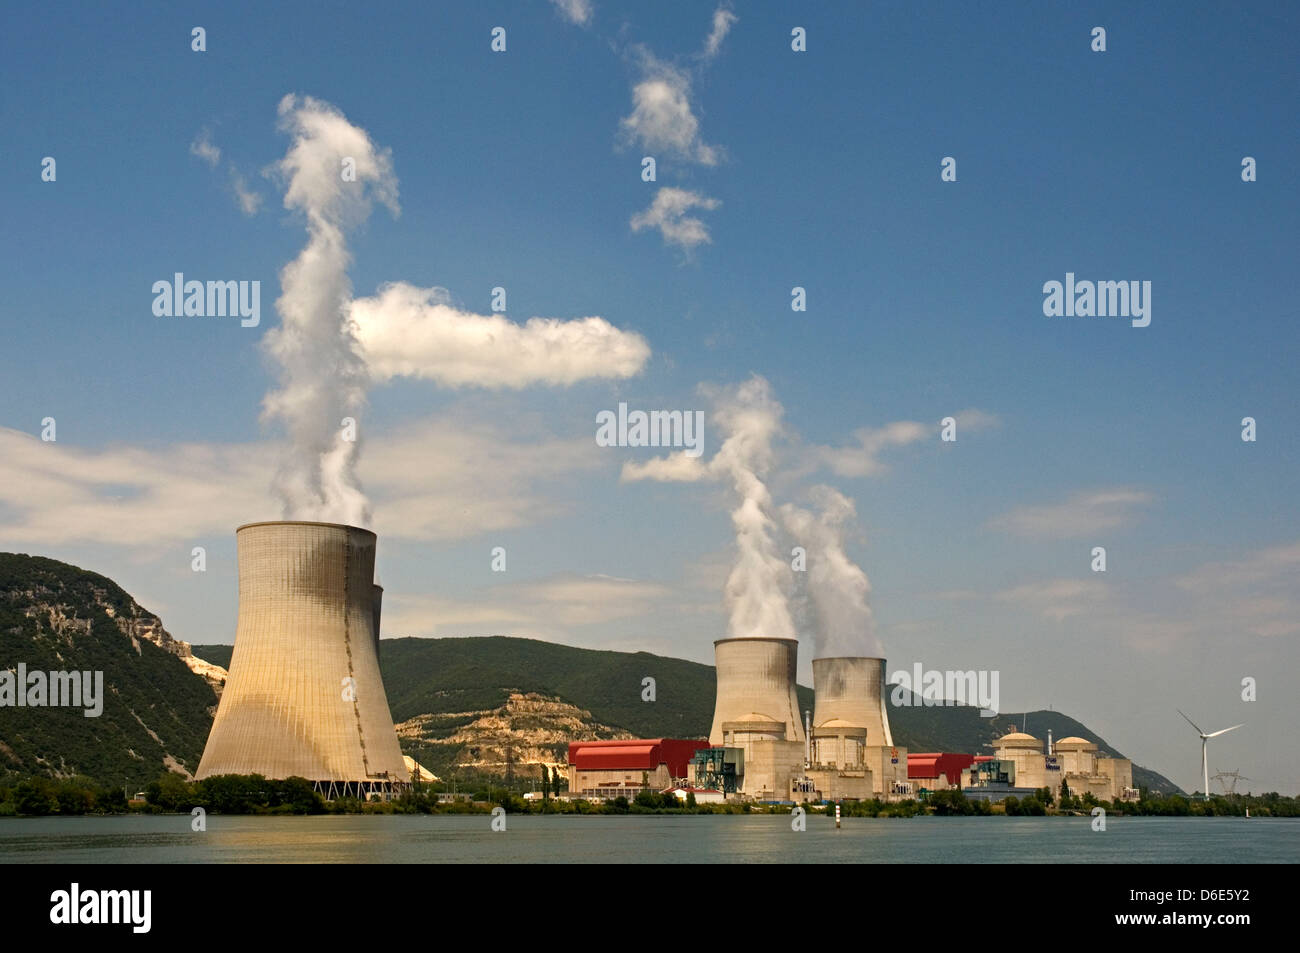 EUROPE, FRANCE, River Rhone, nuclear power station Cruas Meysse, with cooling towers and smoke, and wind turbines - Stock Image